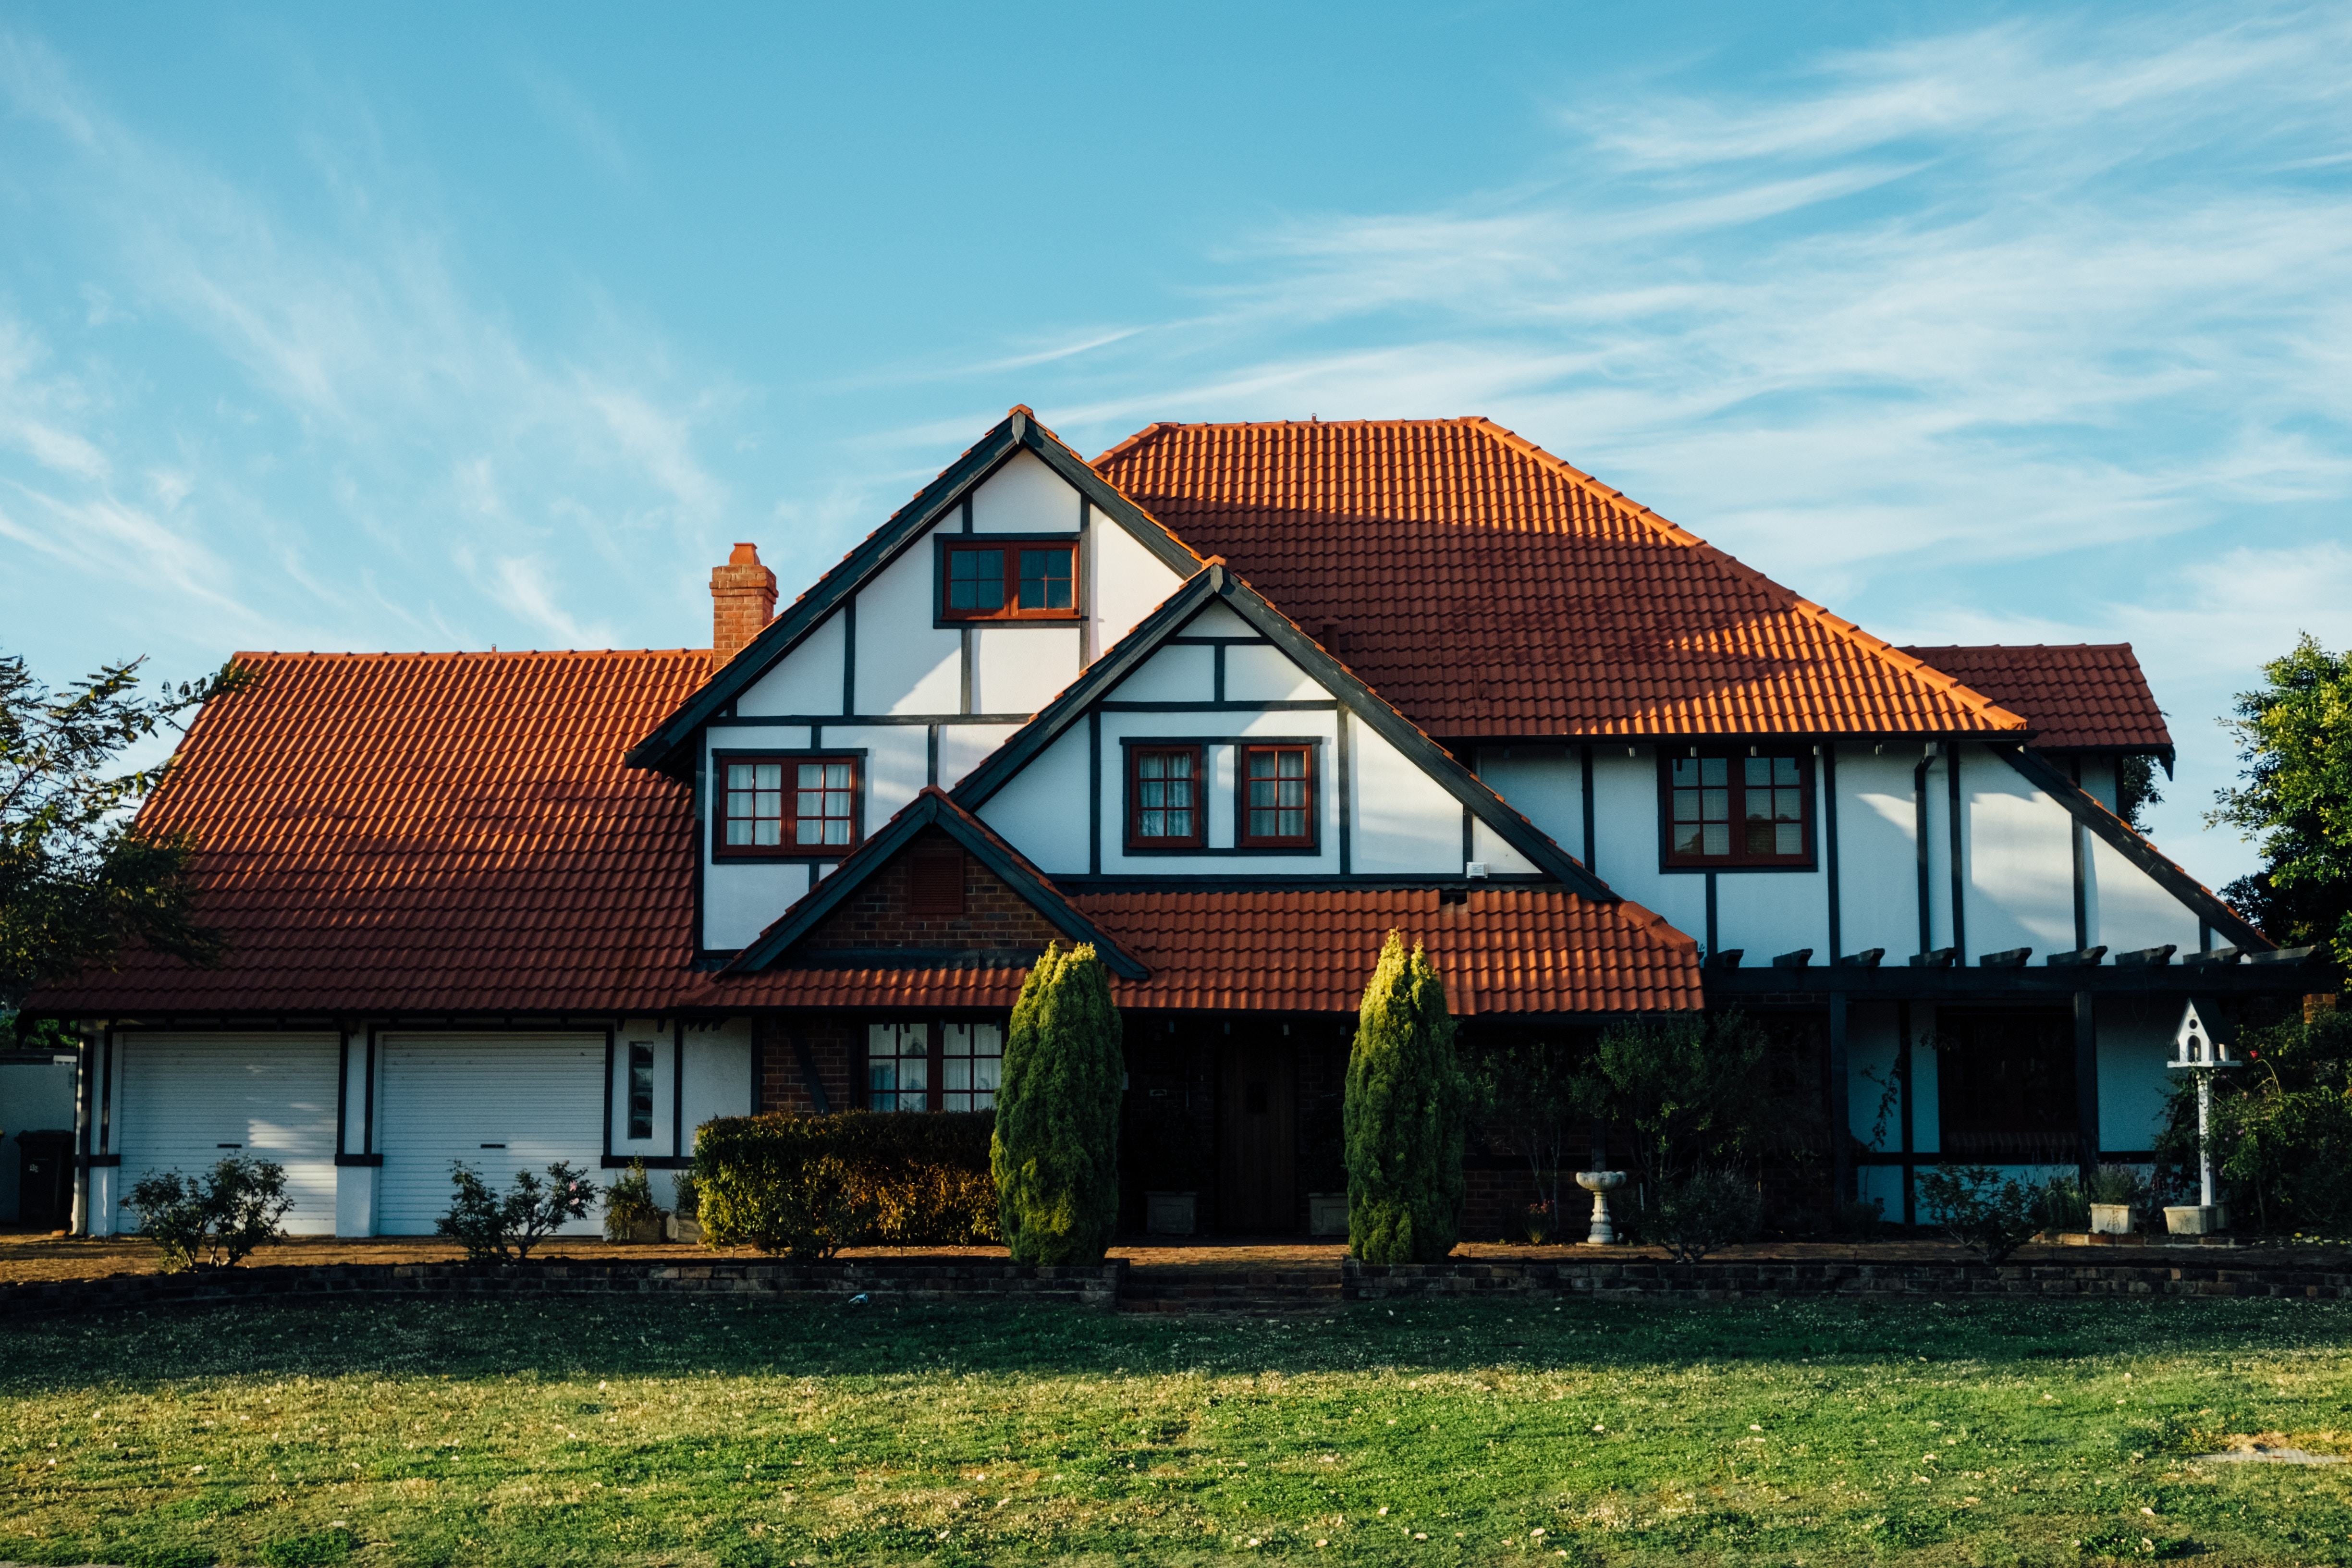 Real Estate Research with Reverse Address Searches